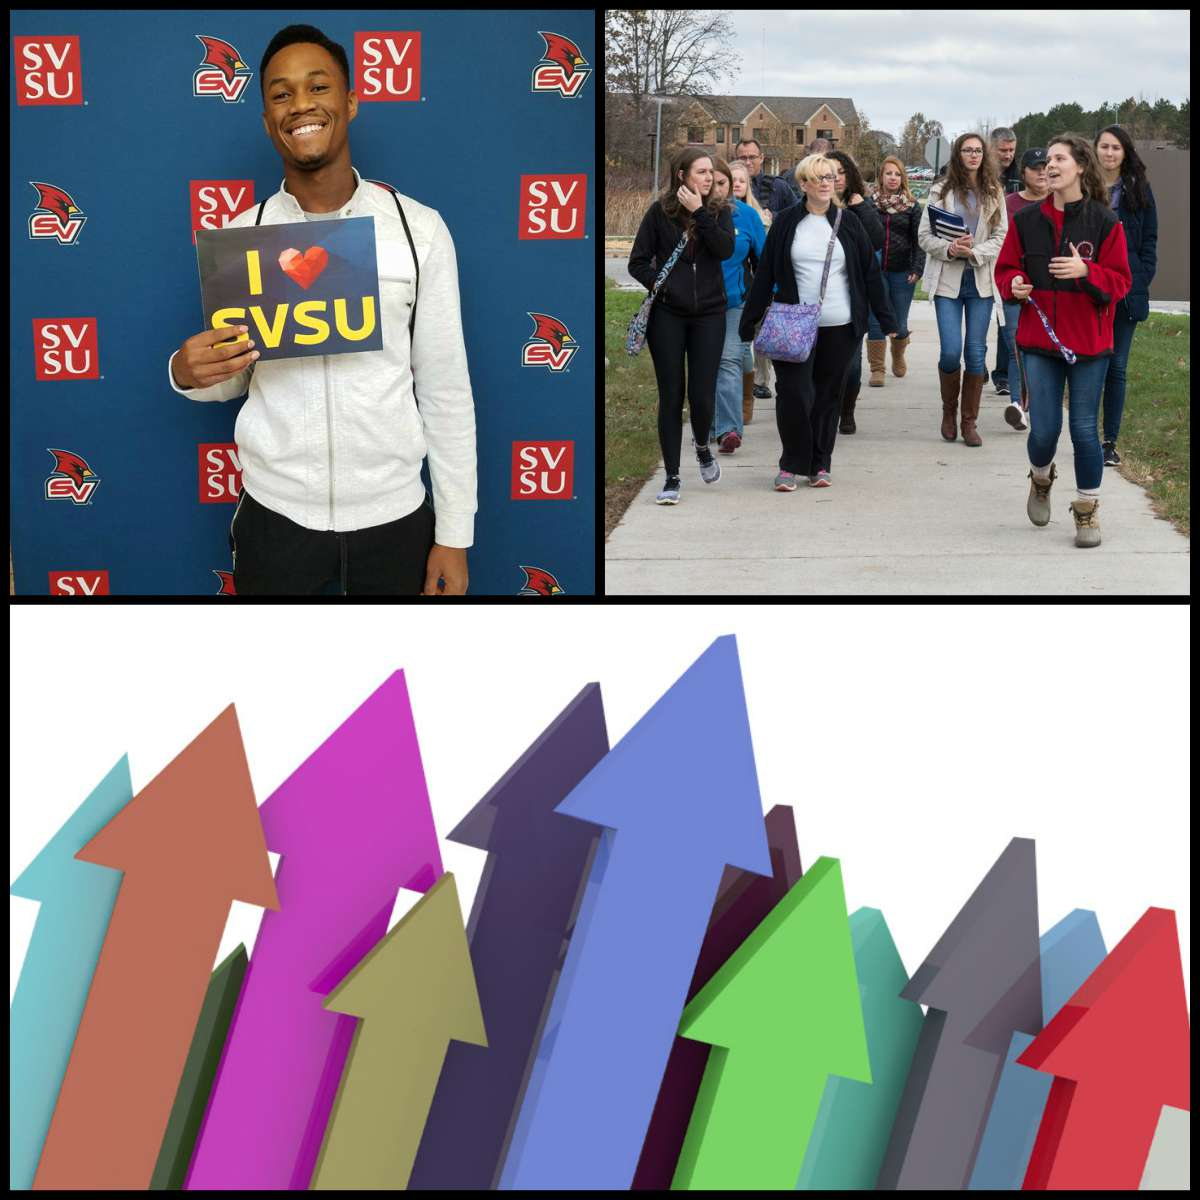 Student holding I Love SVSU sign at open house, a campus tour group and a graphic of arrows pointing up in various colors.